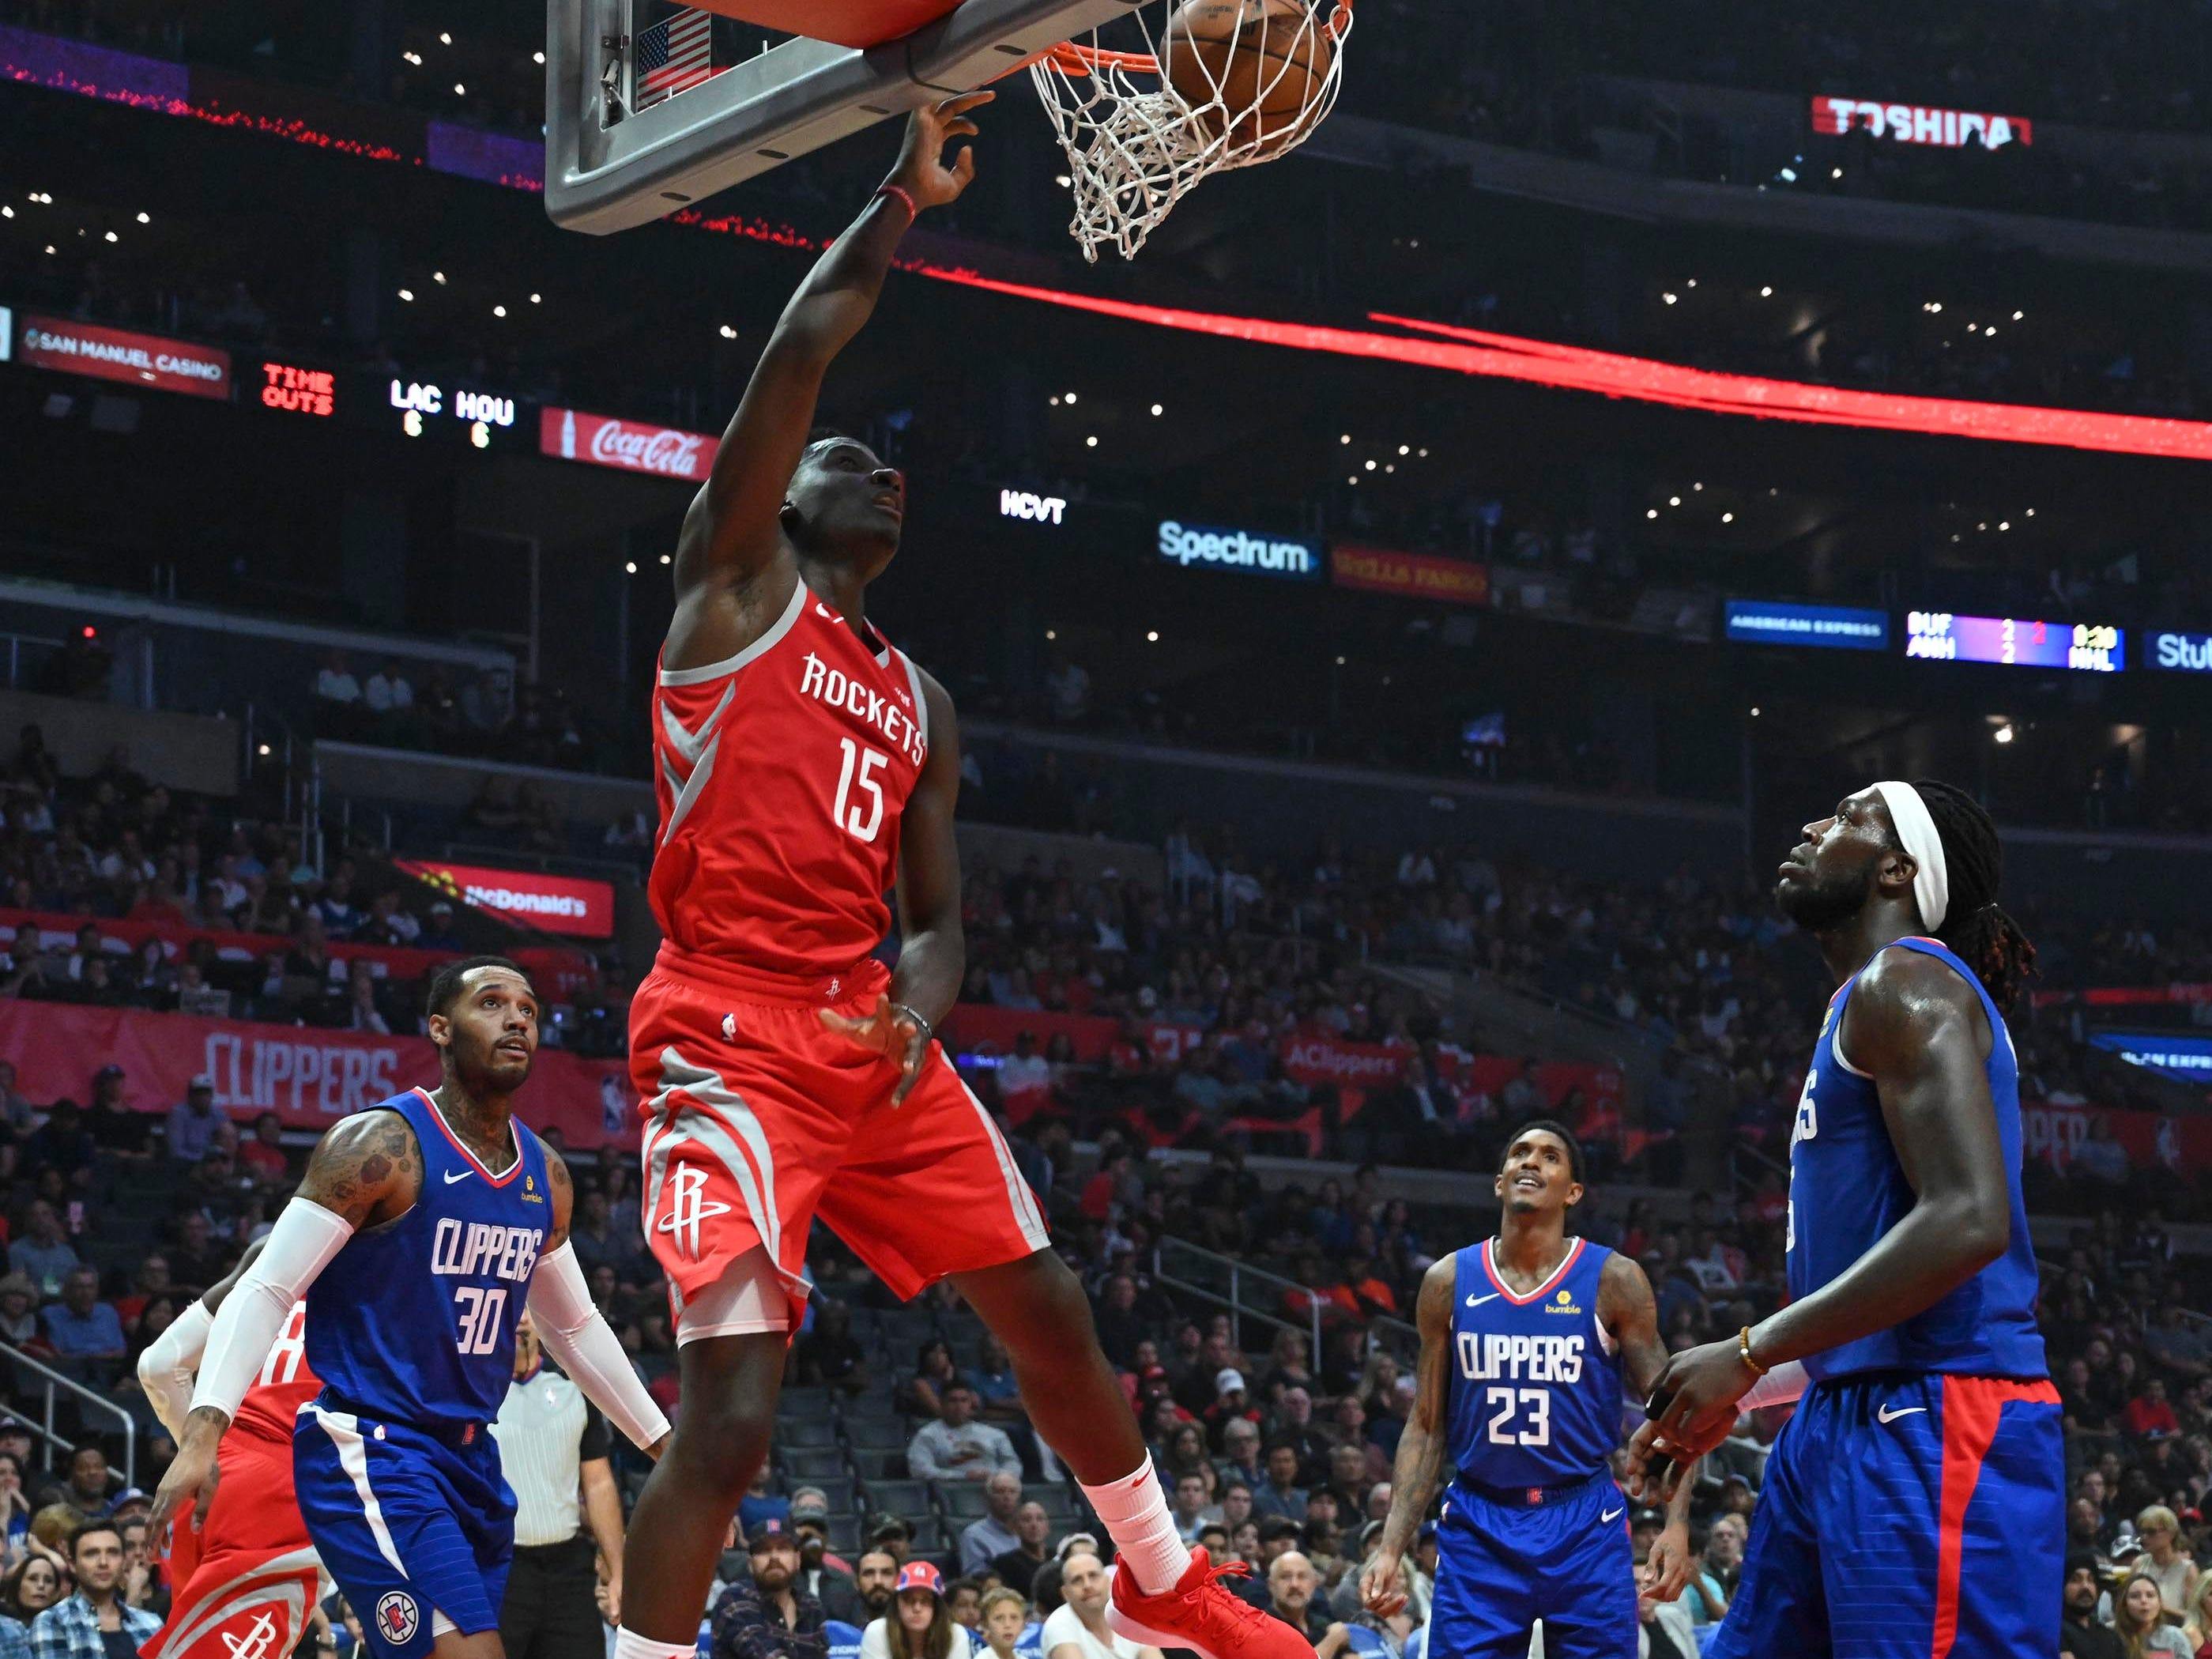 Oct 21: Rockets center Clint Capela rises for a right-handed slam against the Clippers.